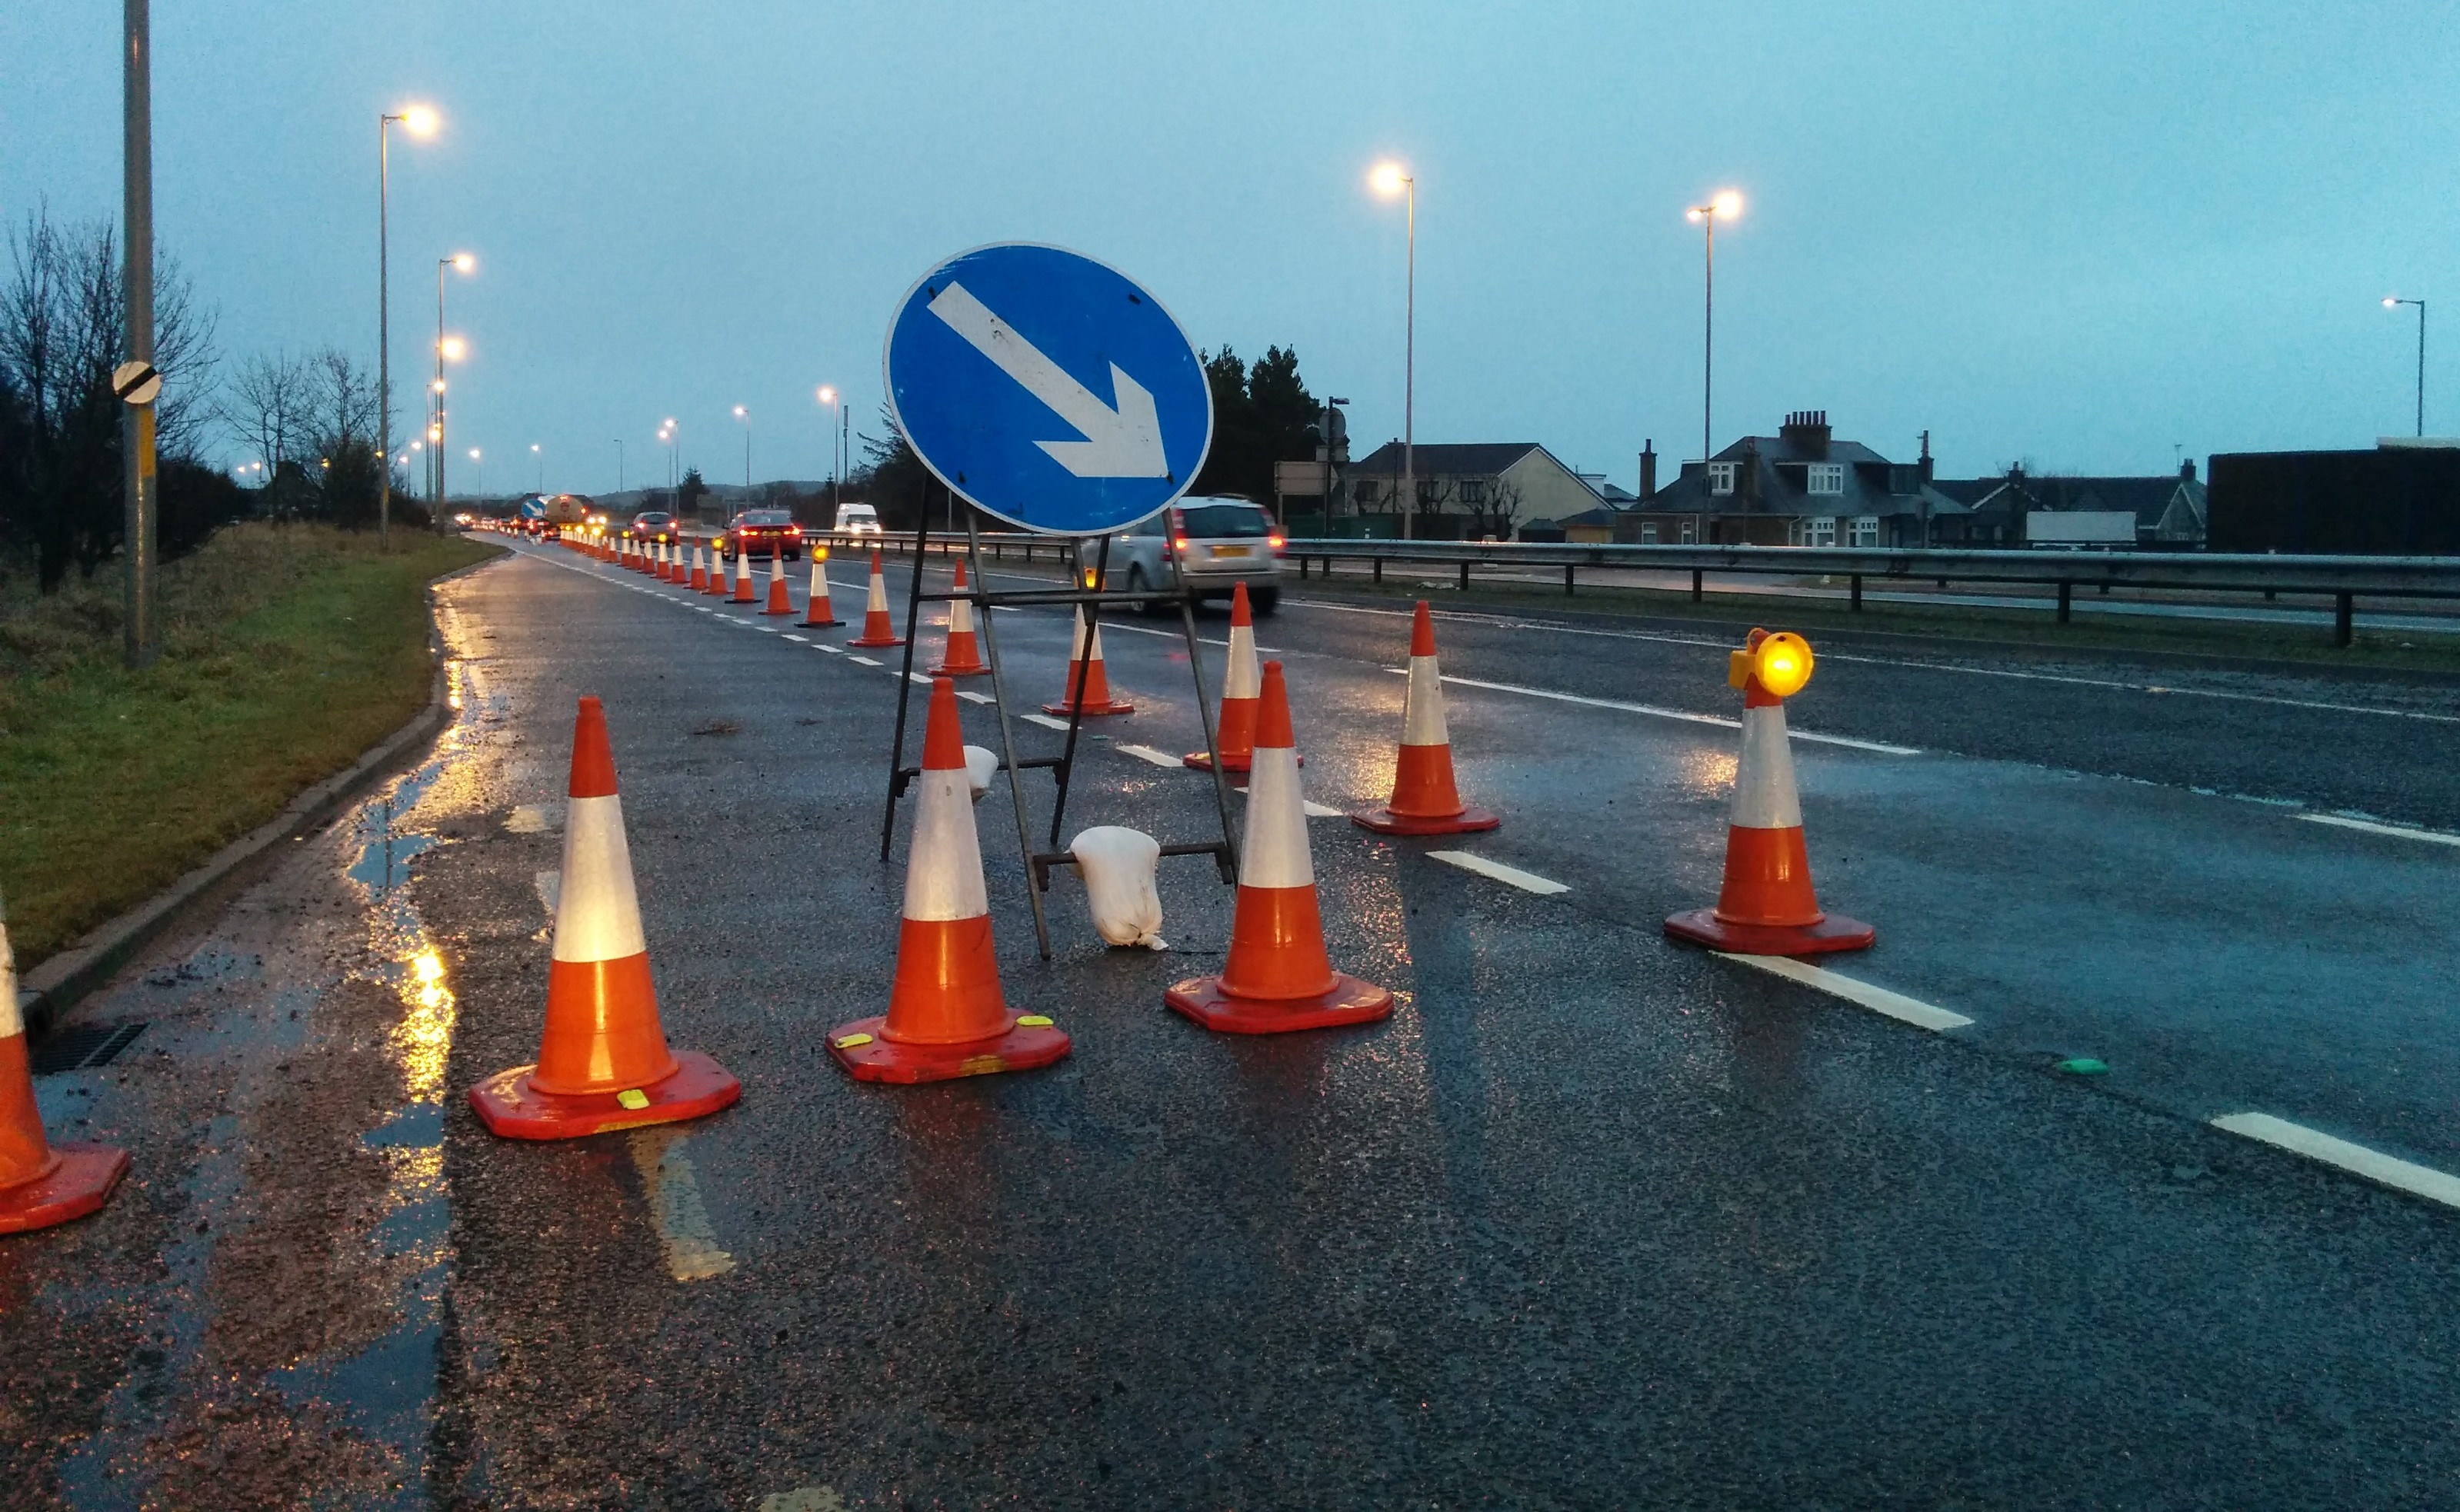 One lane was closed for the works